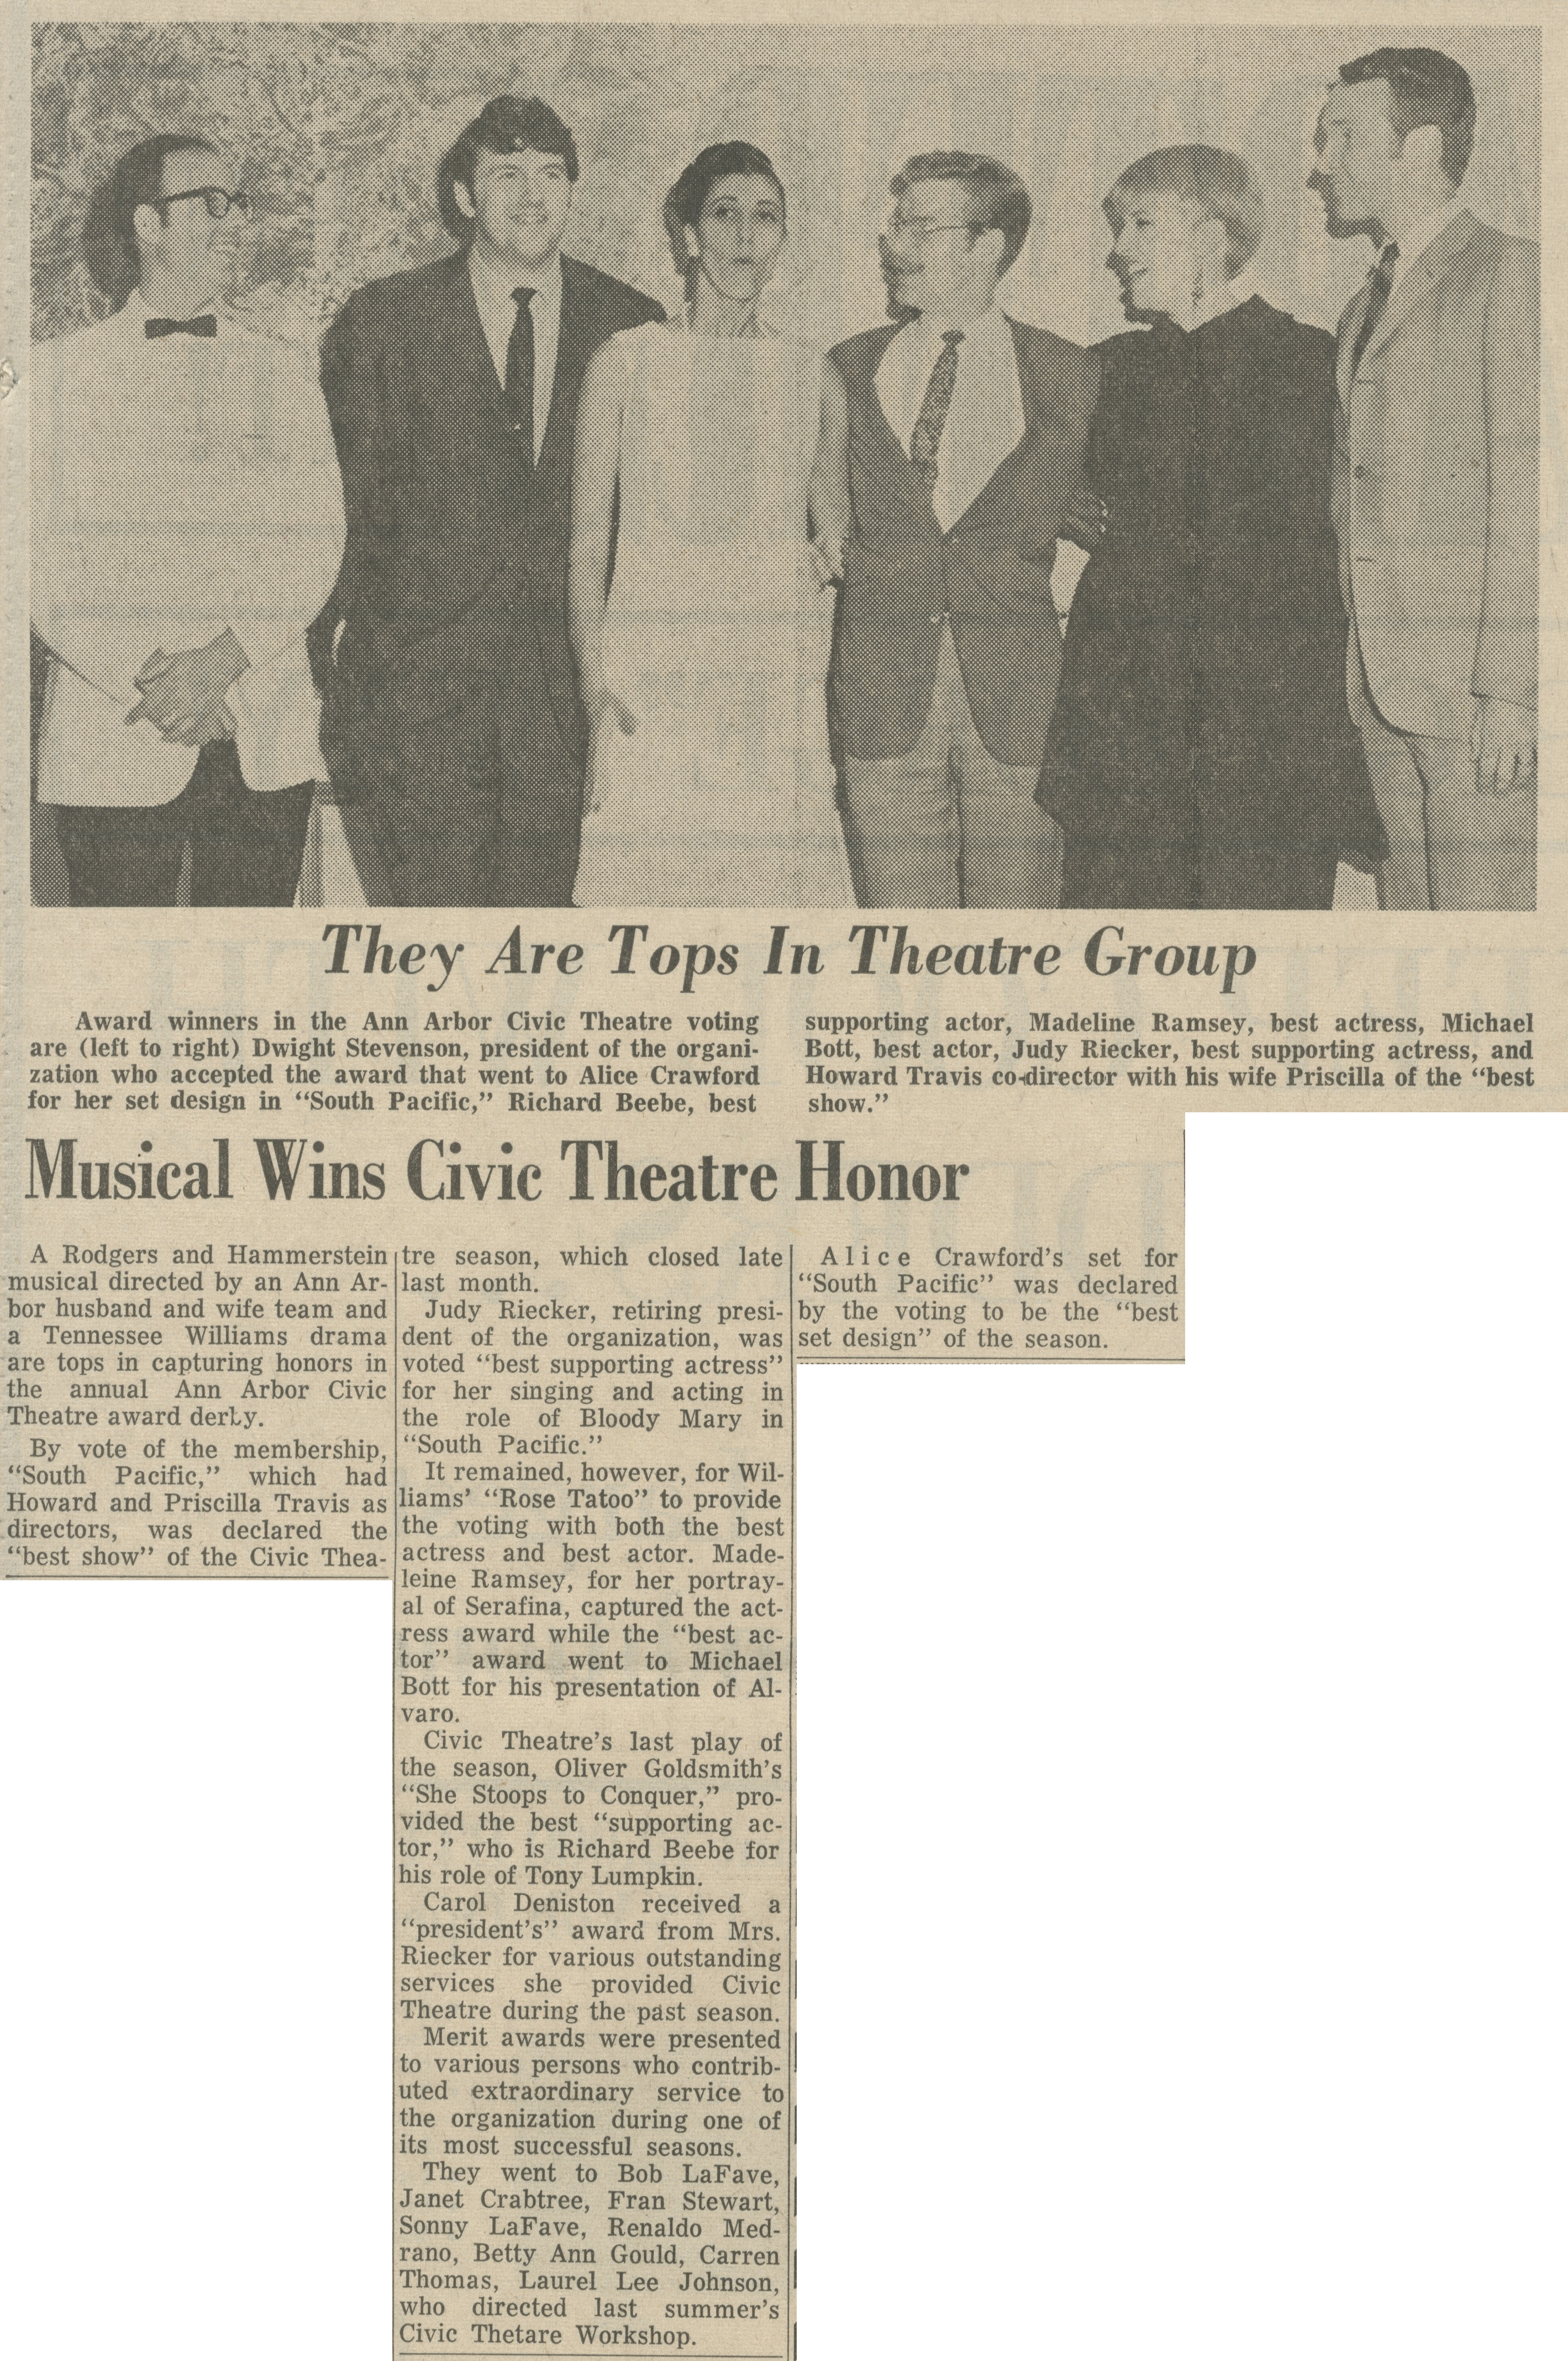 Musical Wins Civic Theatre Honor image